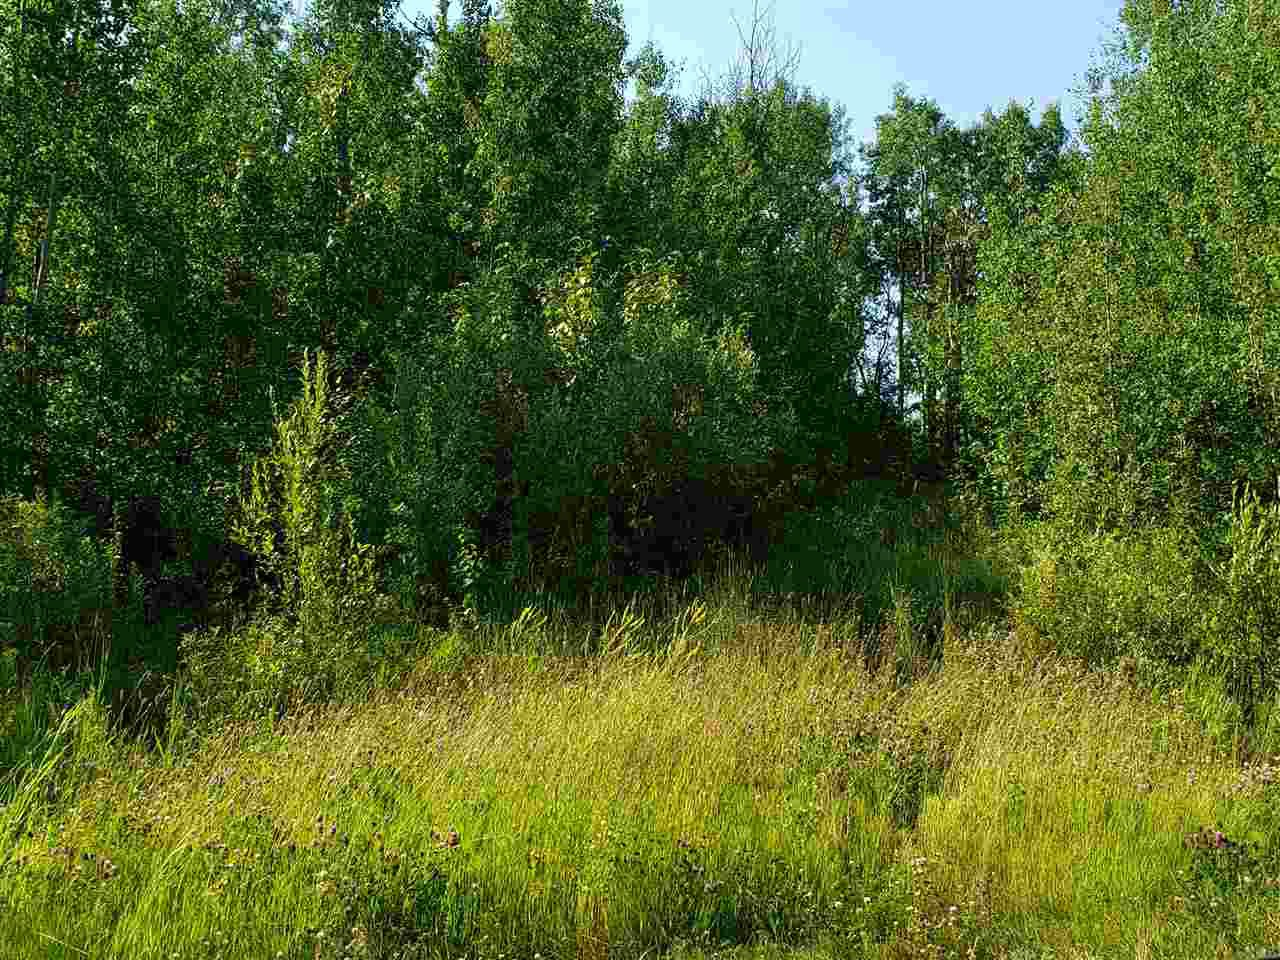 Photo 7: Photos: 22 Morgan Way: Rural Lac Ste. Anne County Rural Land/Vacant Lot for sale : MLS®# E4209833